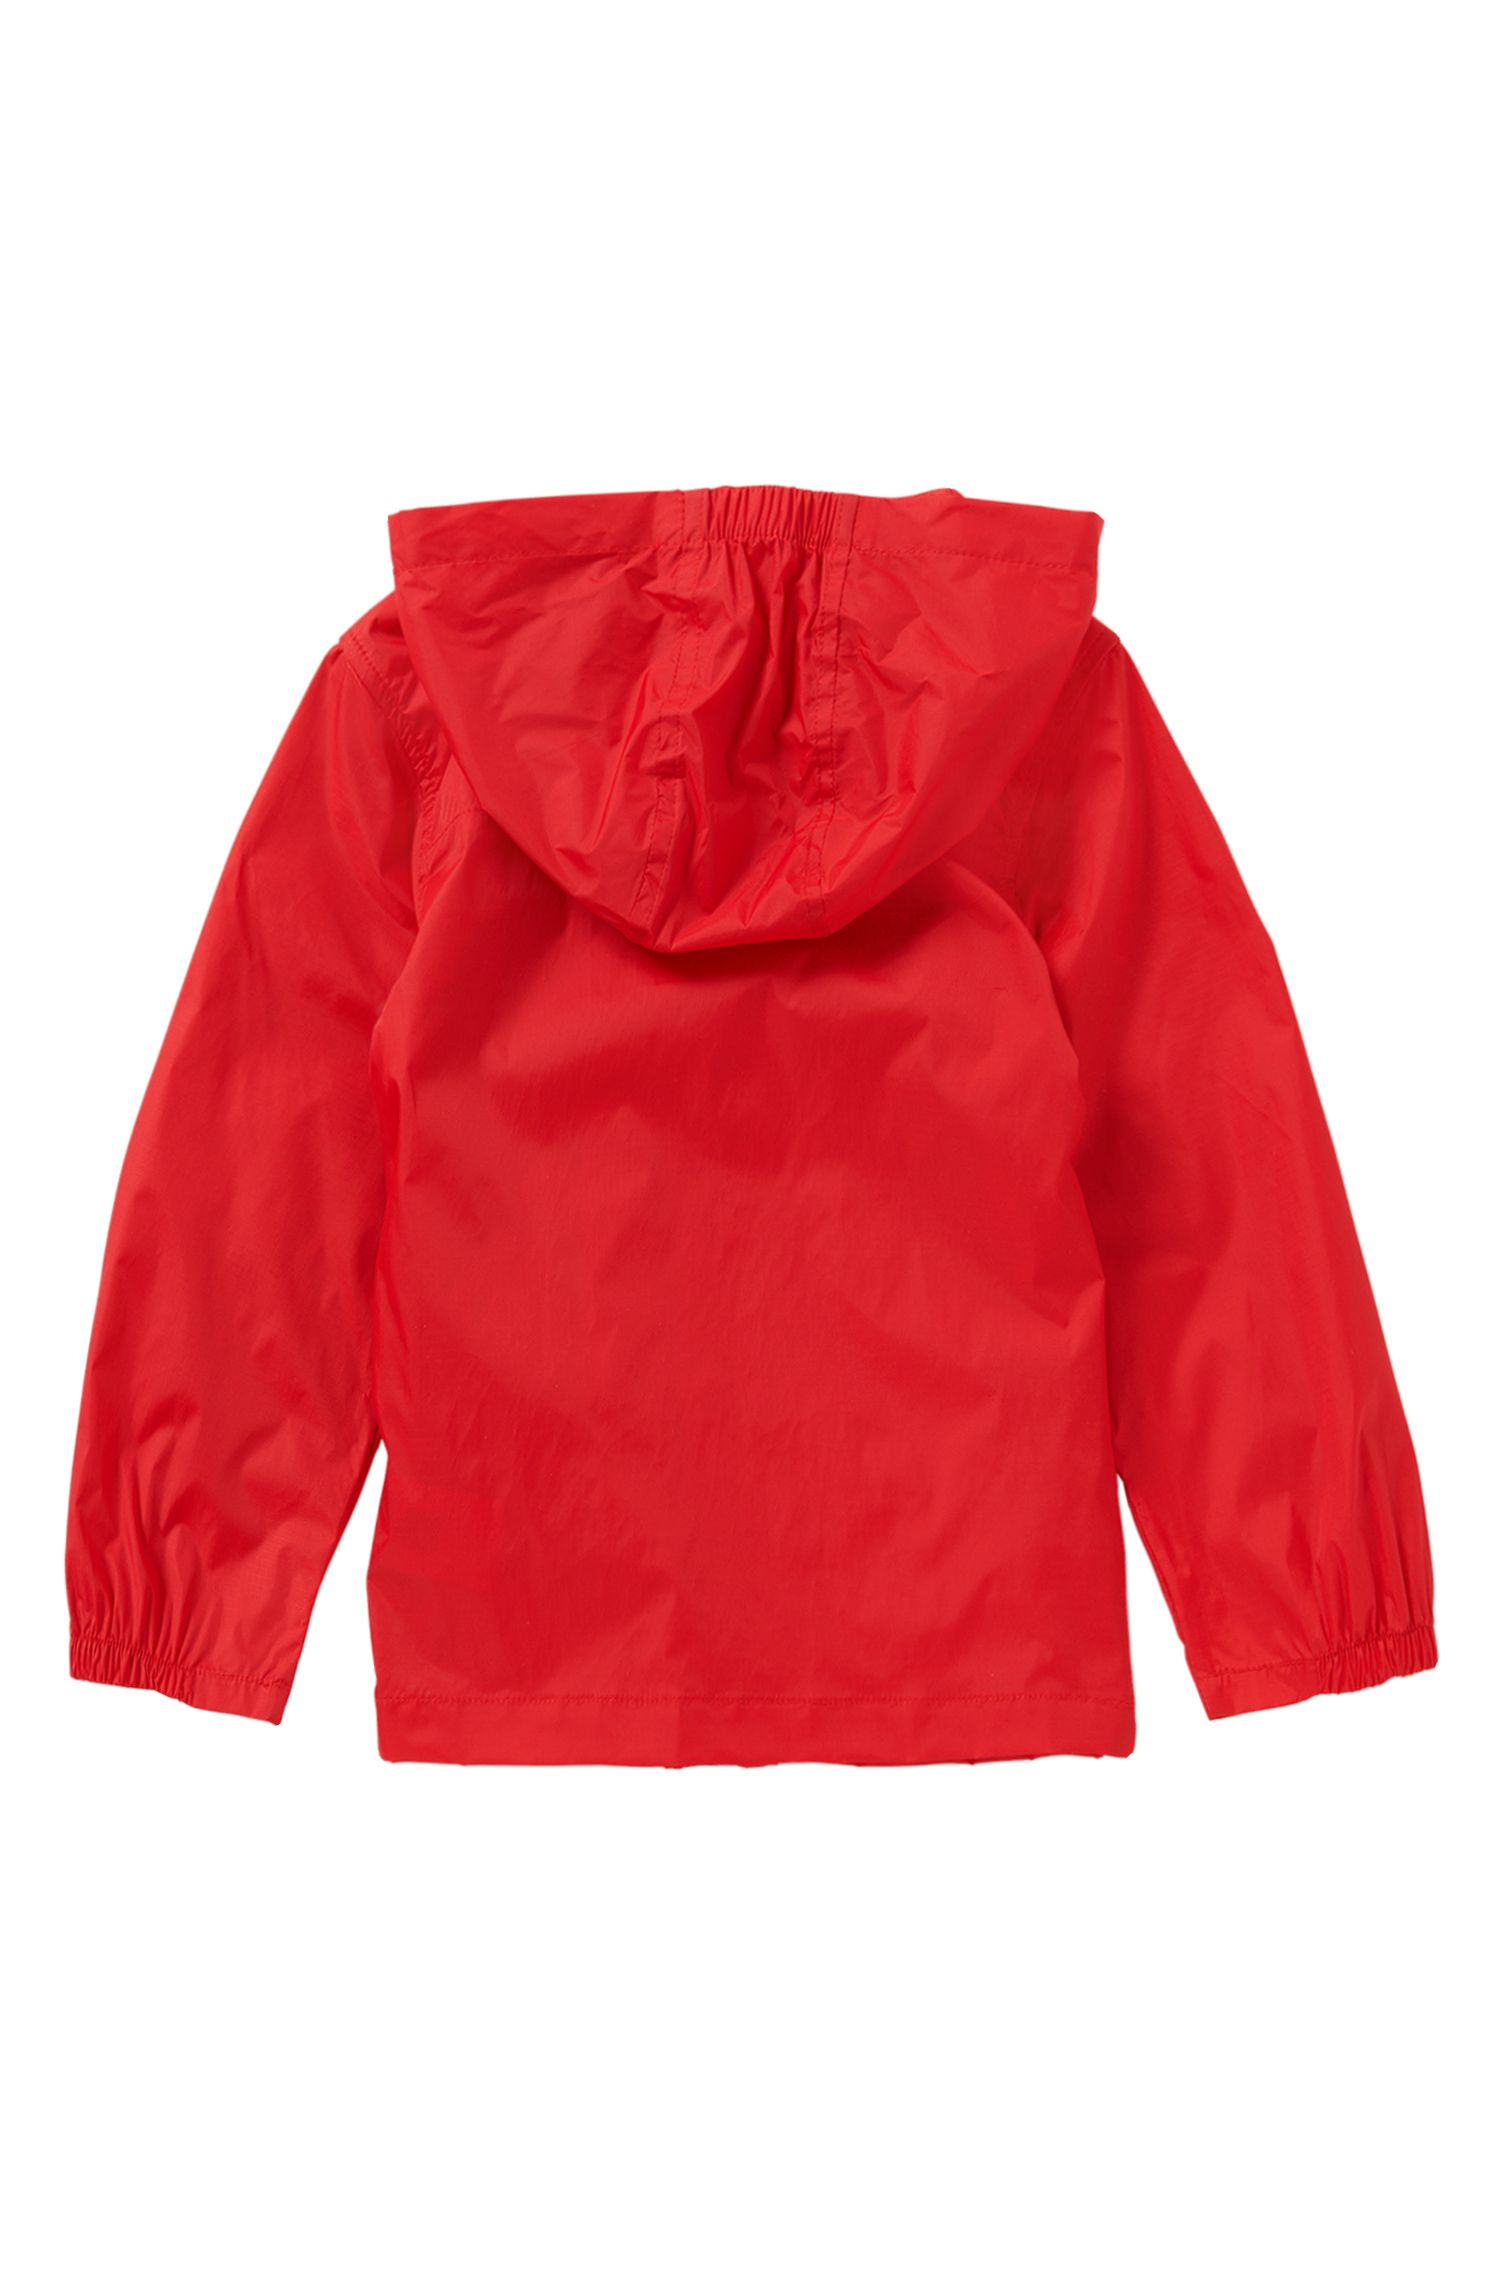 Kids' jacket in stretch cotton blend: 'J26280'